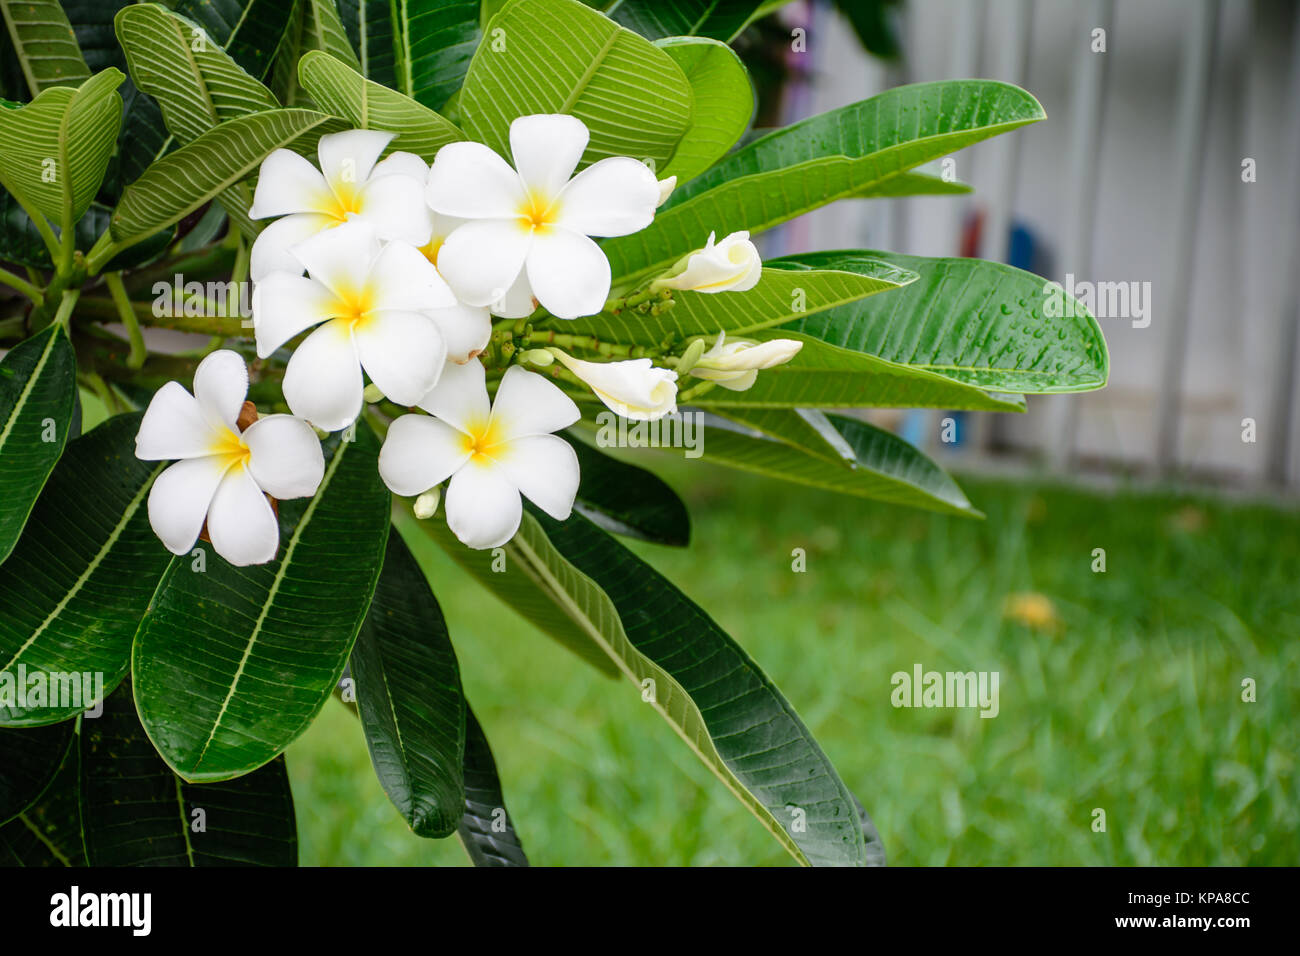 white champa whit green leaf - Stock Image